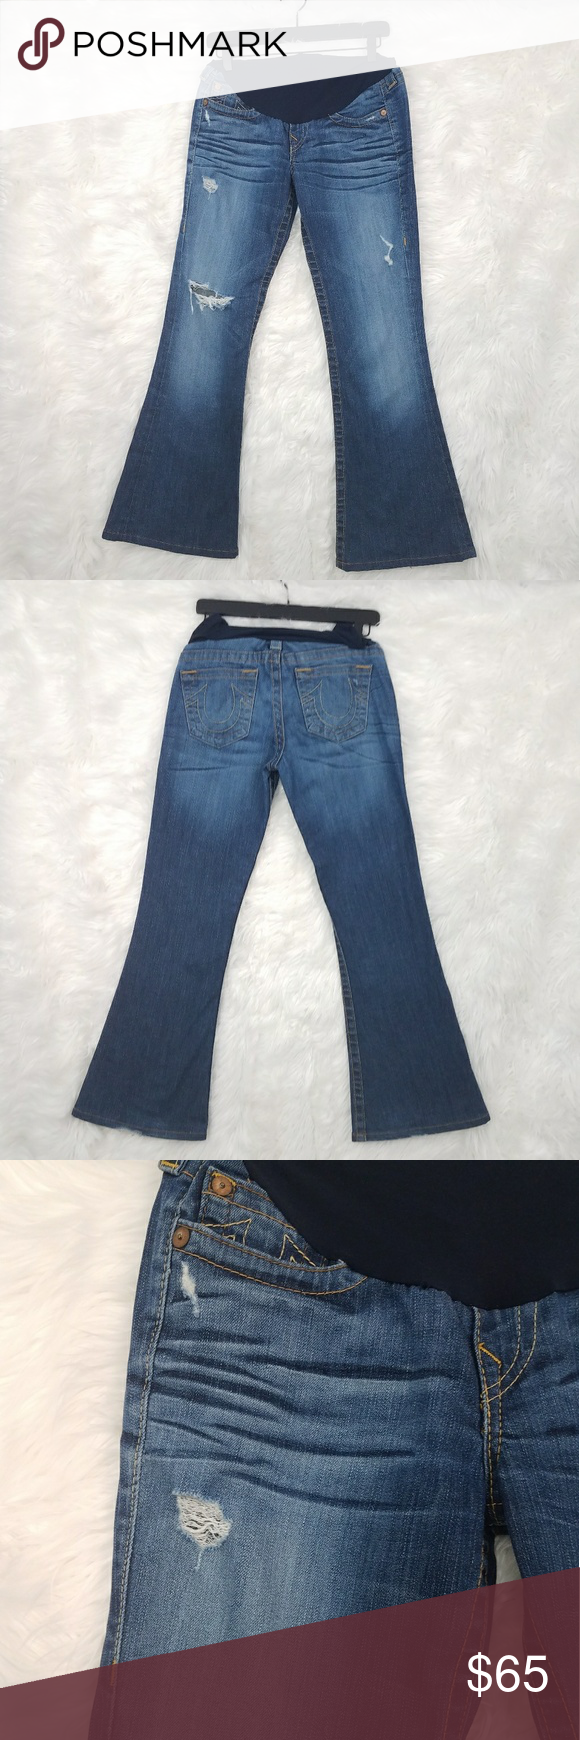 ff231debe0c07 True Religion Maternity Jeans Size 29 Great Condition! A Pea in the Pod  Collection True